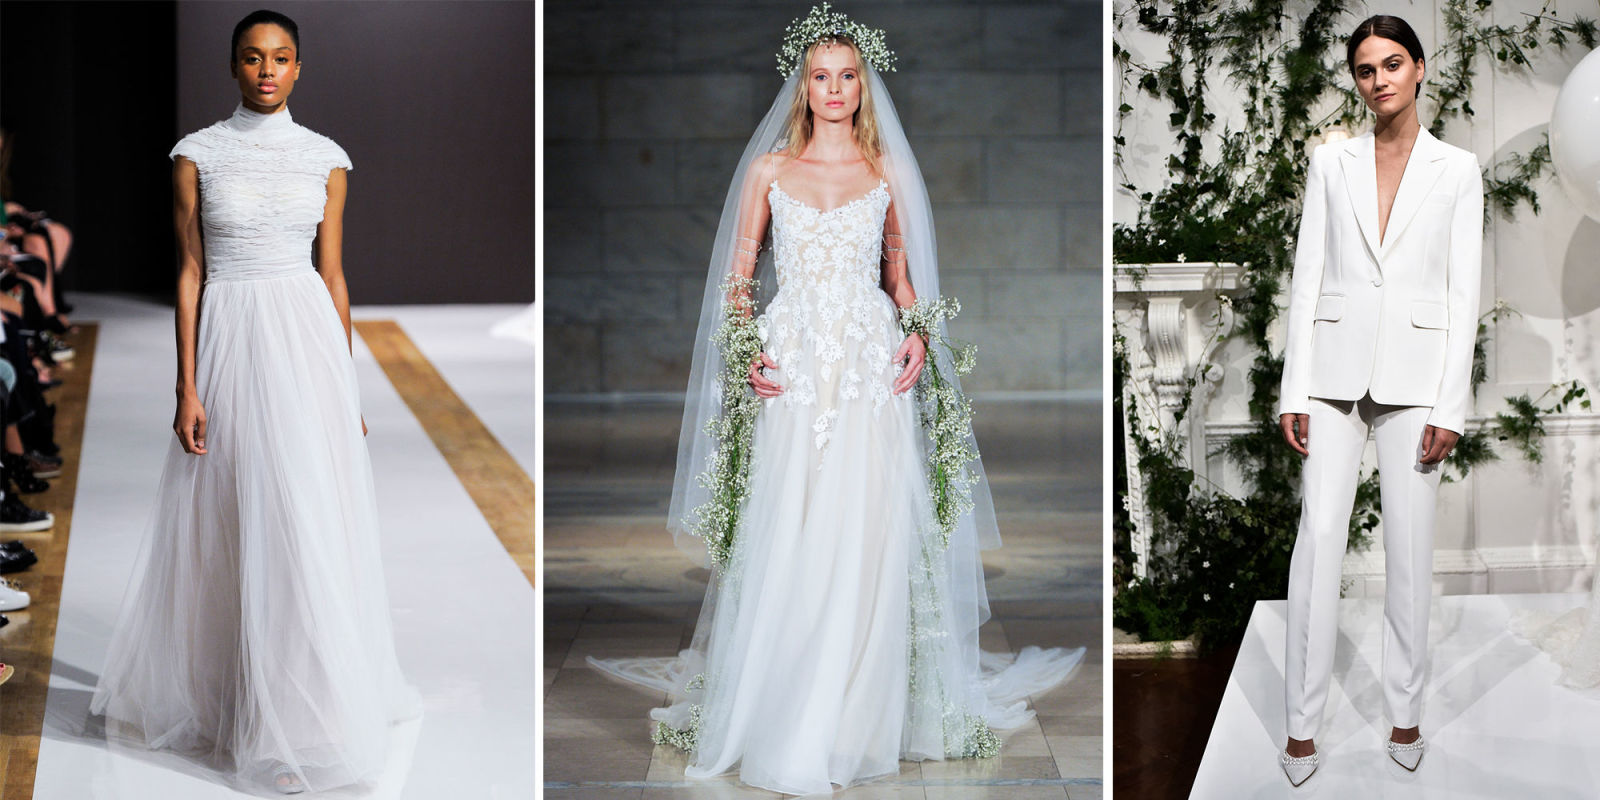 19 dreamy haute couture wedding dresses meghan markle could wear 19 dreamy haute couture wedding dresses meghan markle could wear on the big day ombrellifo Images